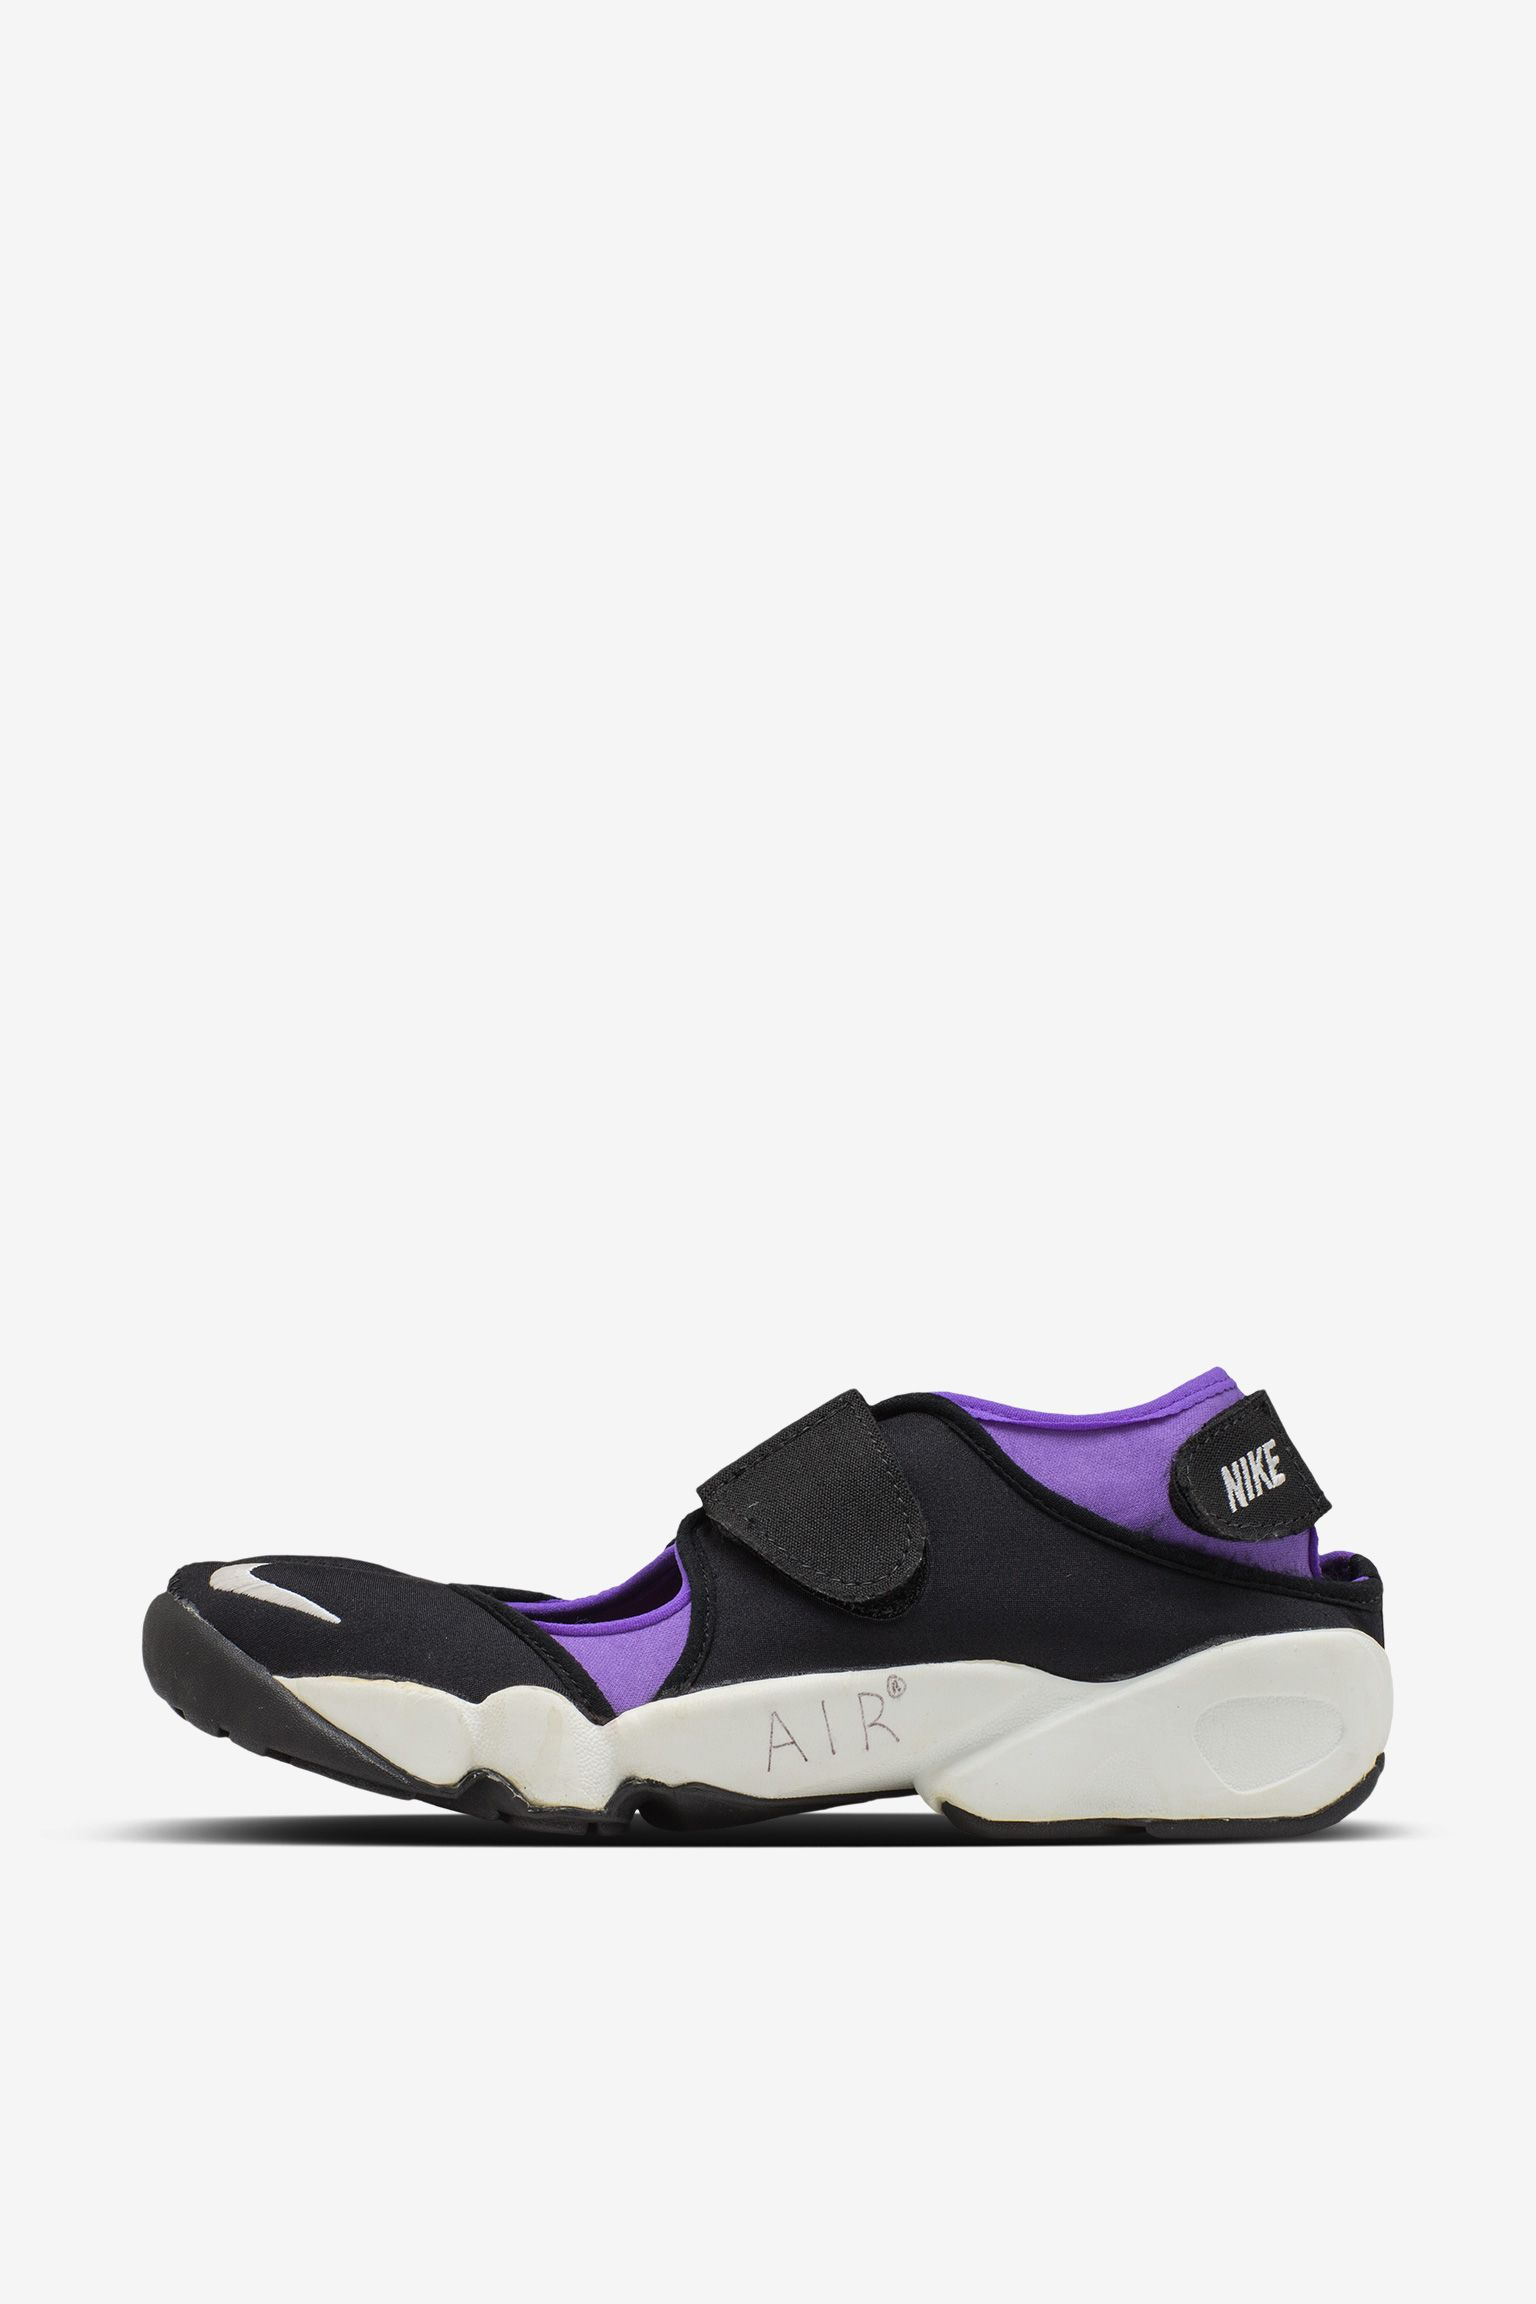 Inside the Vault: Nike Air Rift